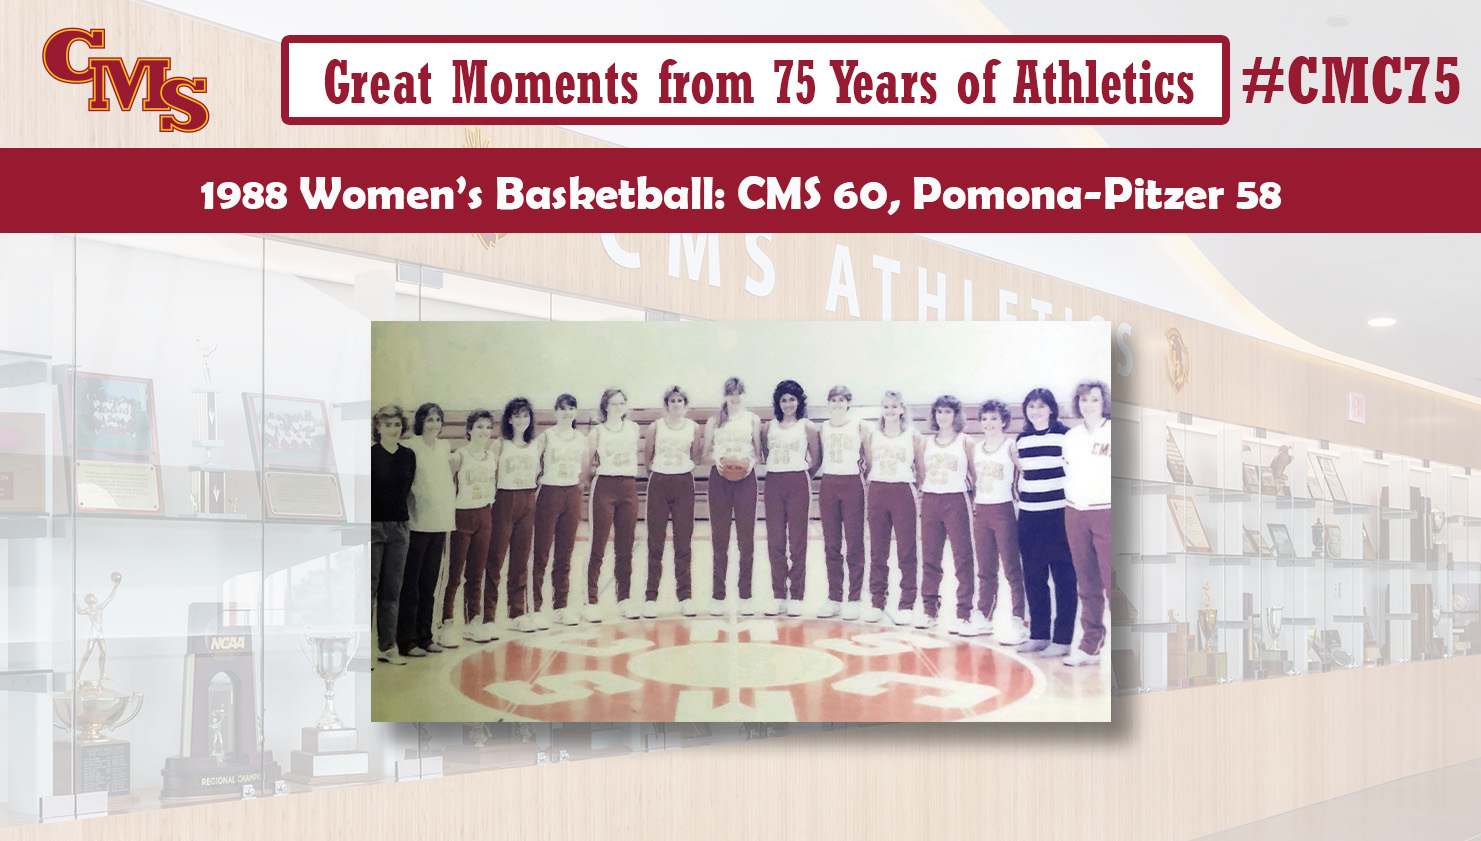 The 1988 CMS Women's Basketball team. Words over the photo read: Great Moments from 75 Years of Athletics. 1988 Women's Basketball: CMS 60, Pomona-Pitzer 58